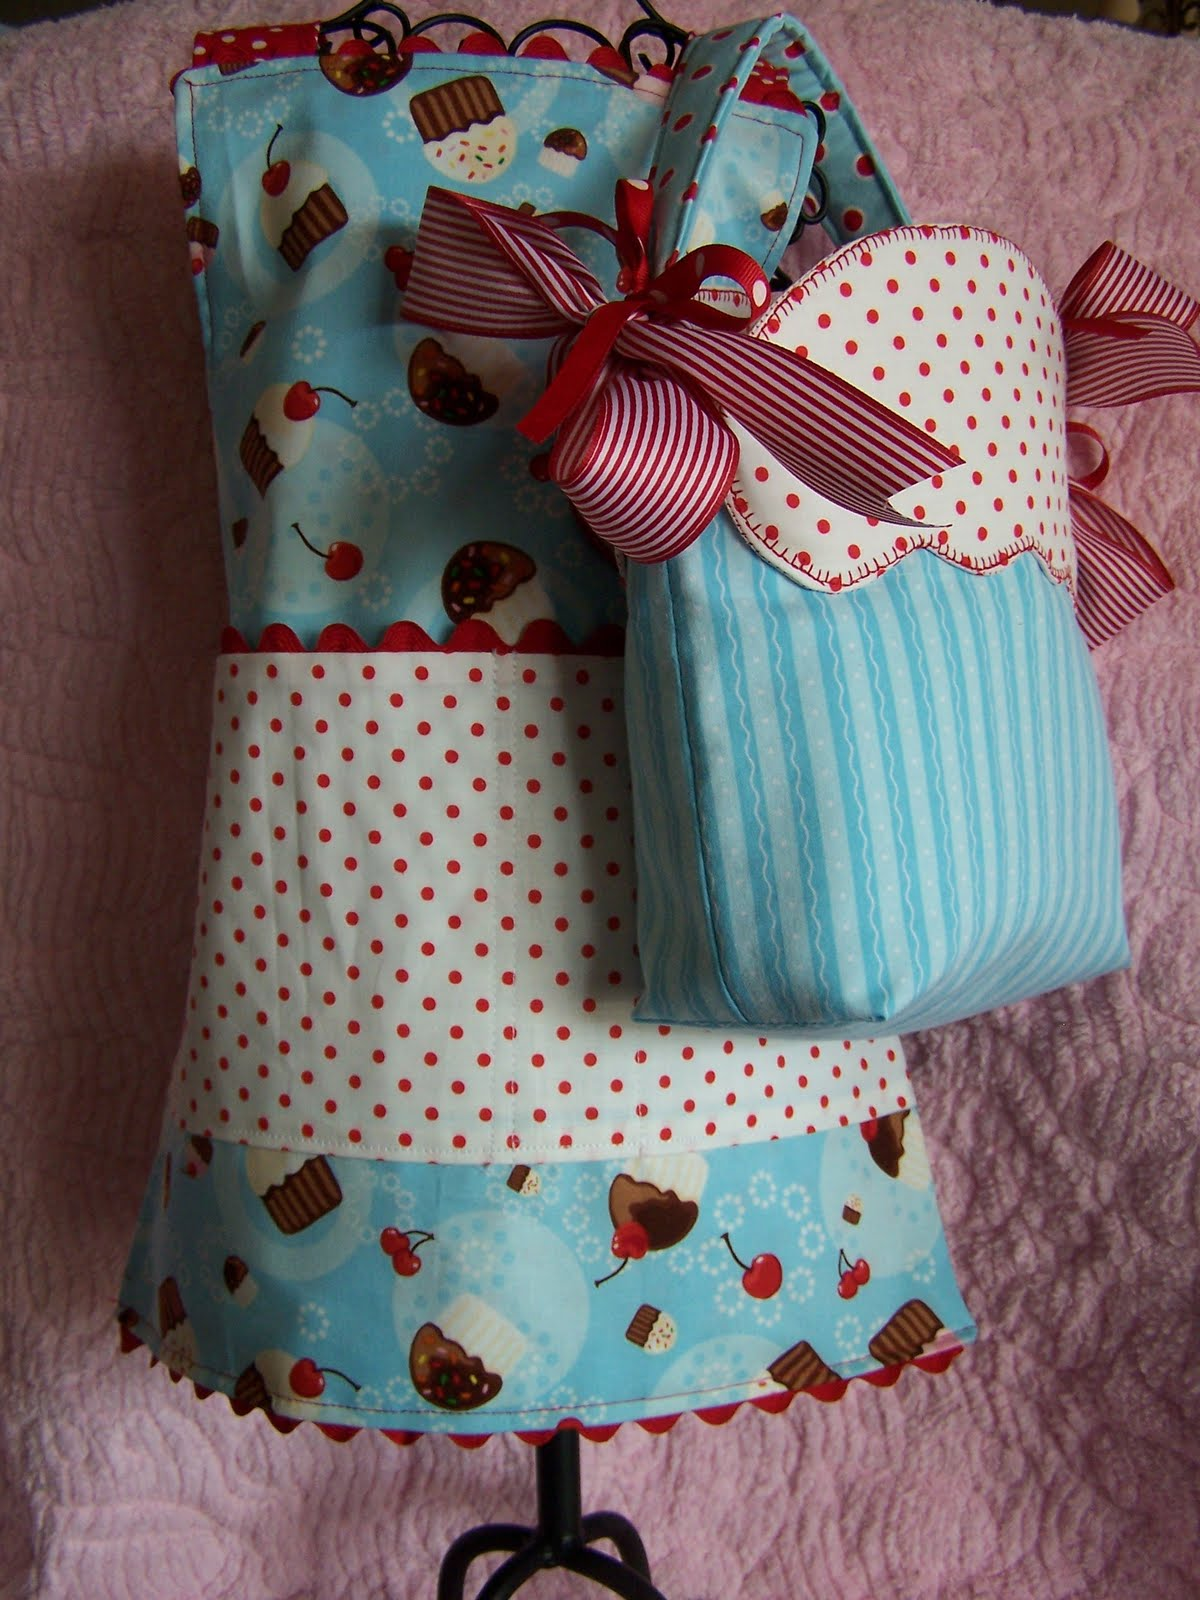 Christmas Sewing and Quilting Projects, Patterns and ...  |New Christmas Sewing Projects